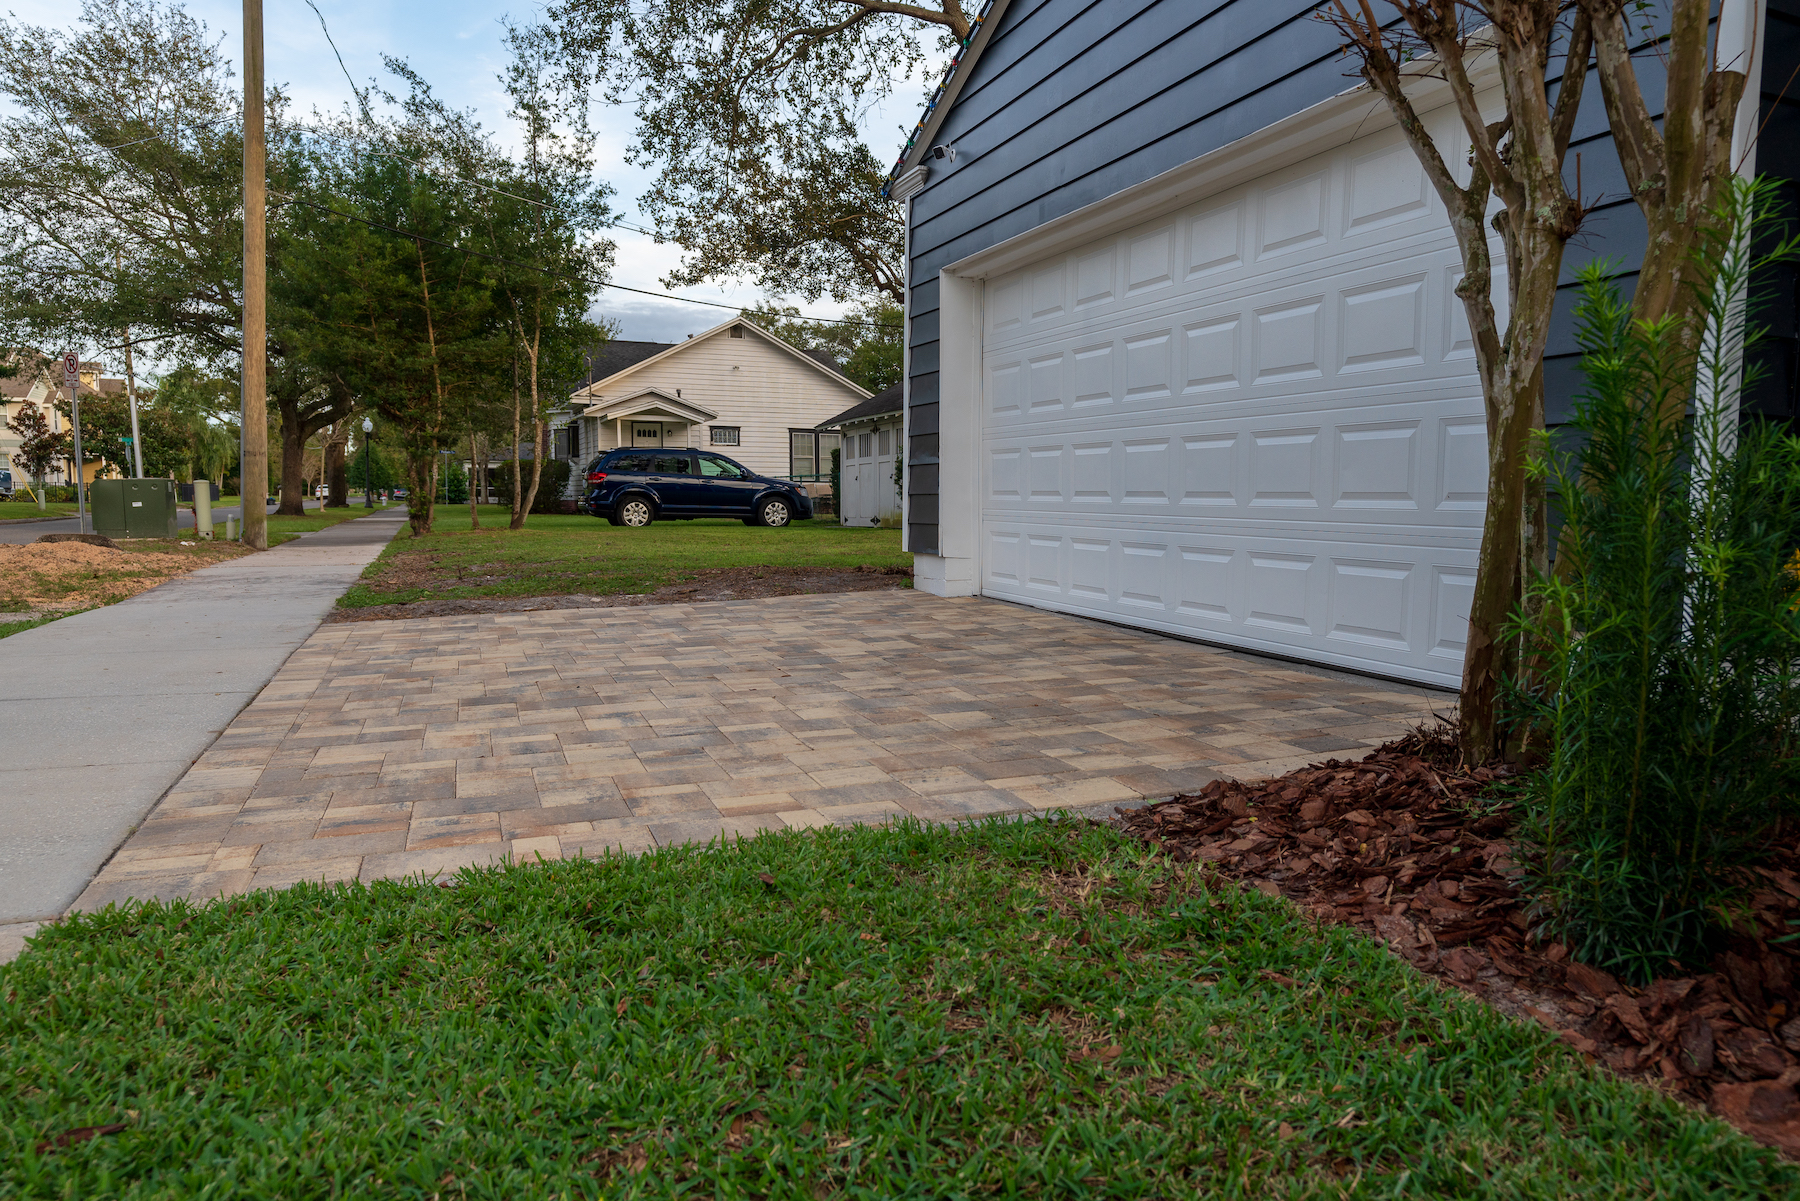 Sloping driveway away from the house